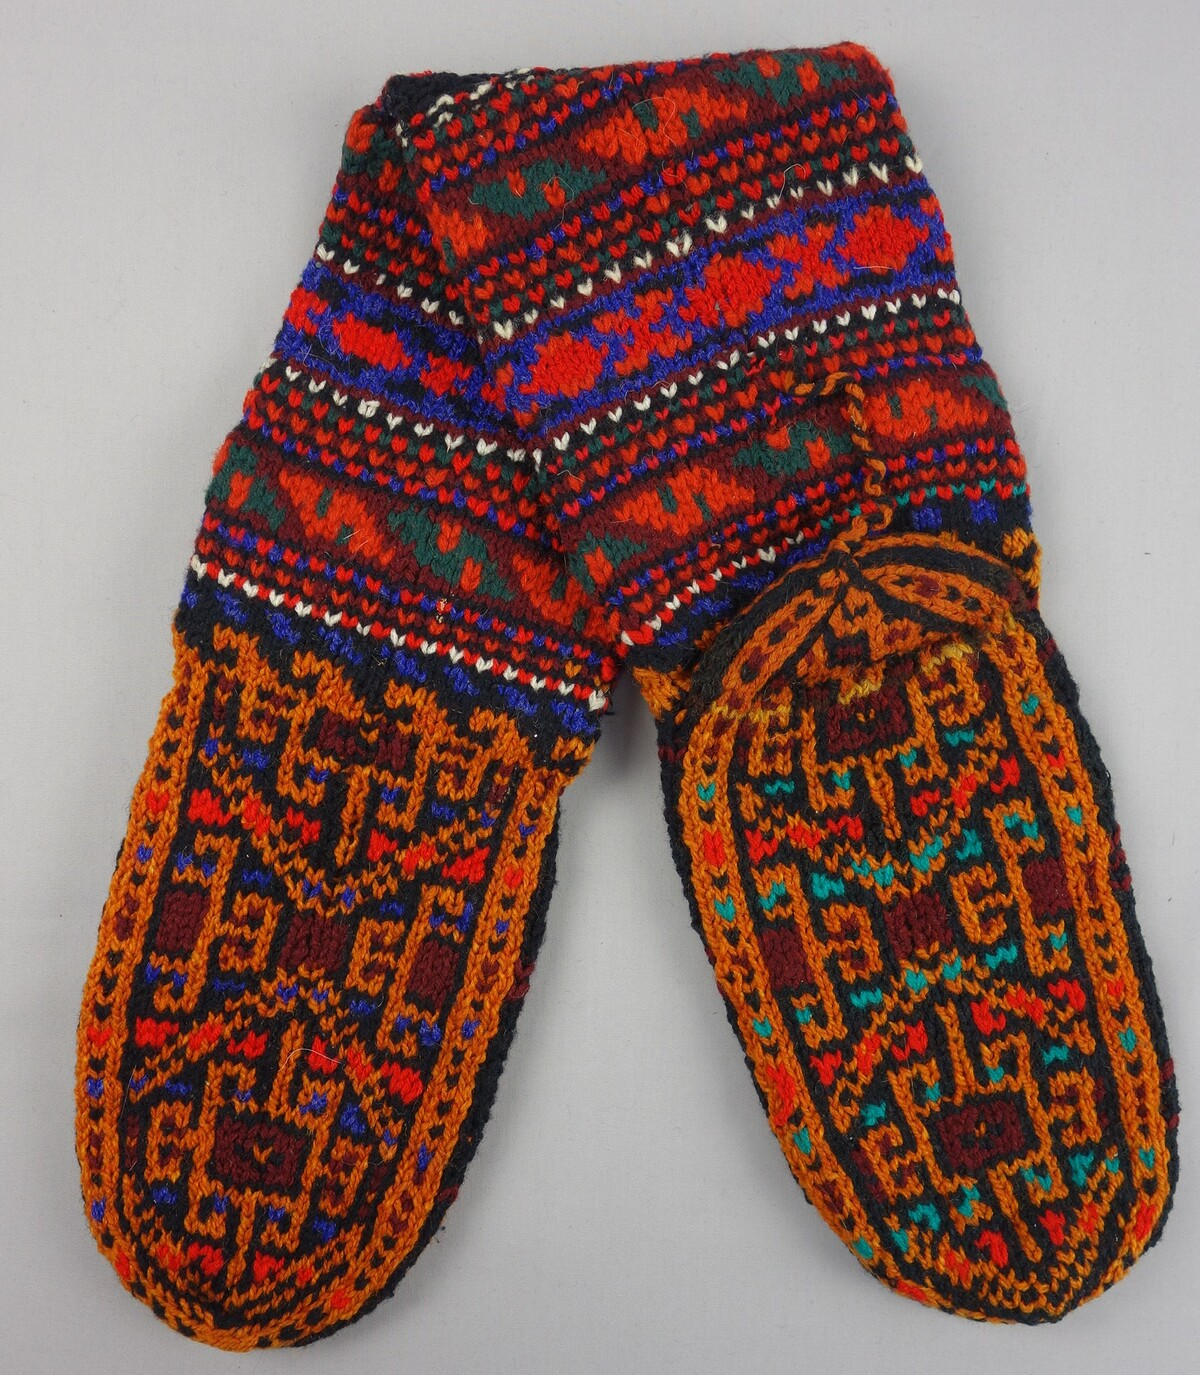 Woollen Turkmen socks from Iran, 1999, TRC 1999.0130a-b.